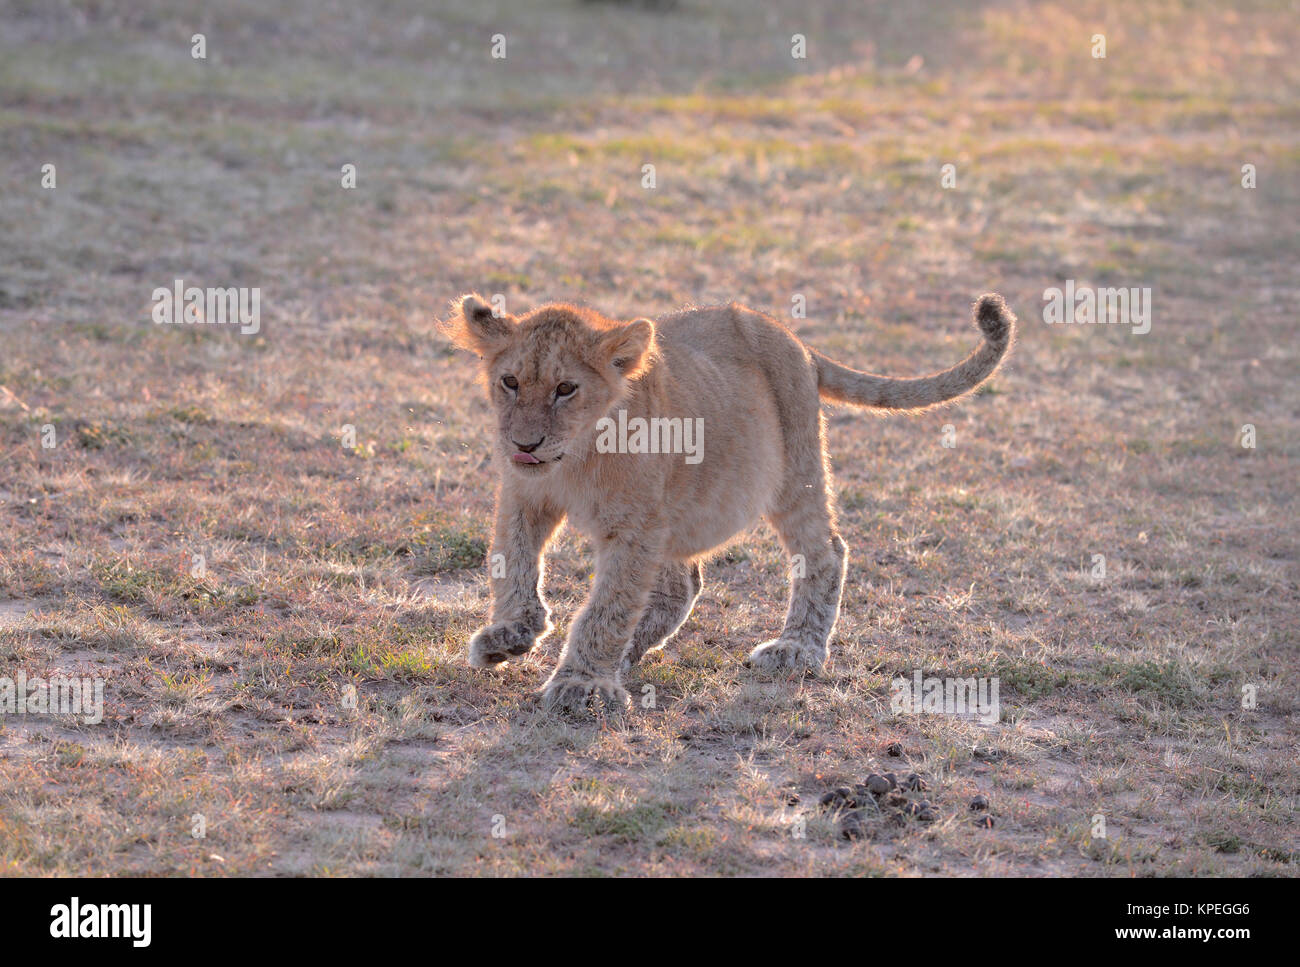 Wildlife in Maasai Mara, Kenya. Small lion cub all on his own in the open grassland. - Stock Image